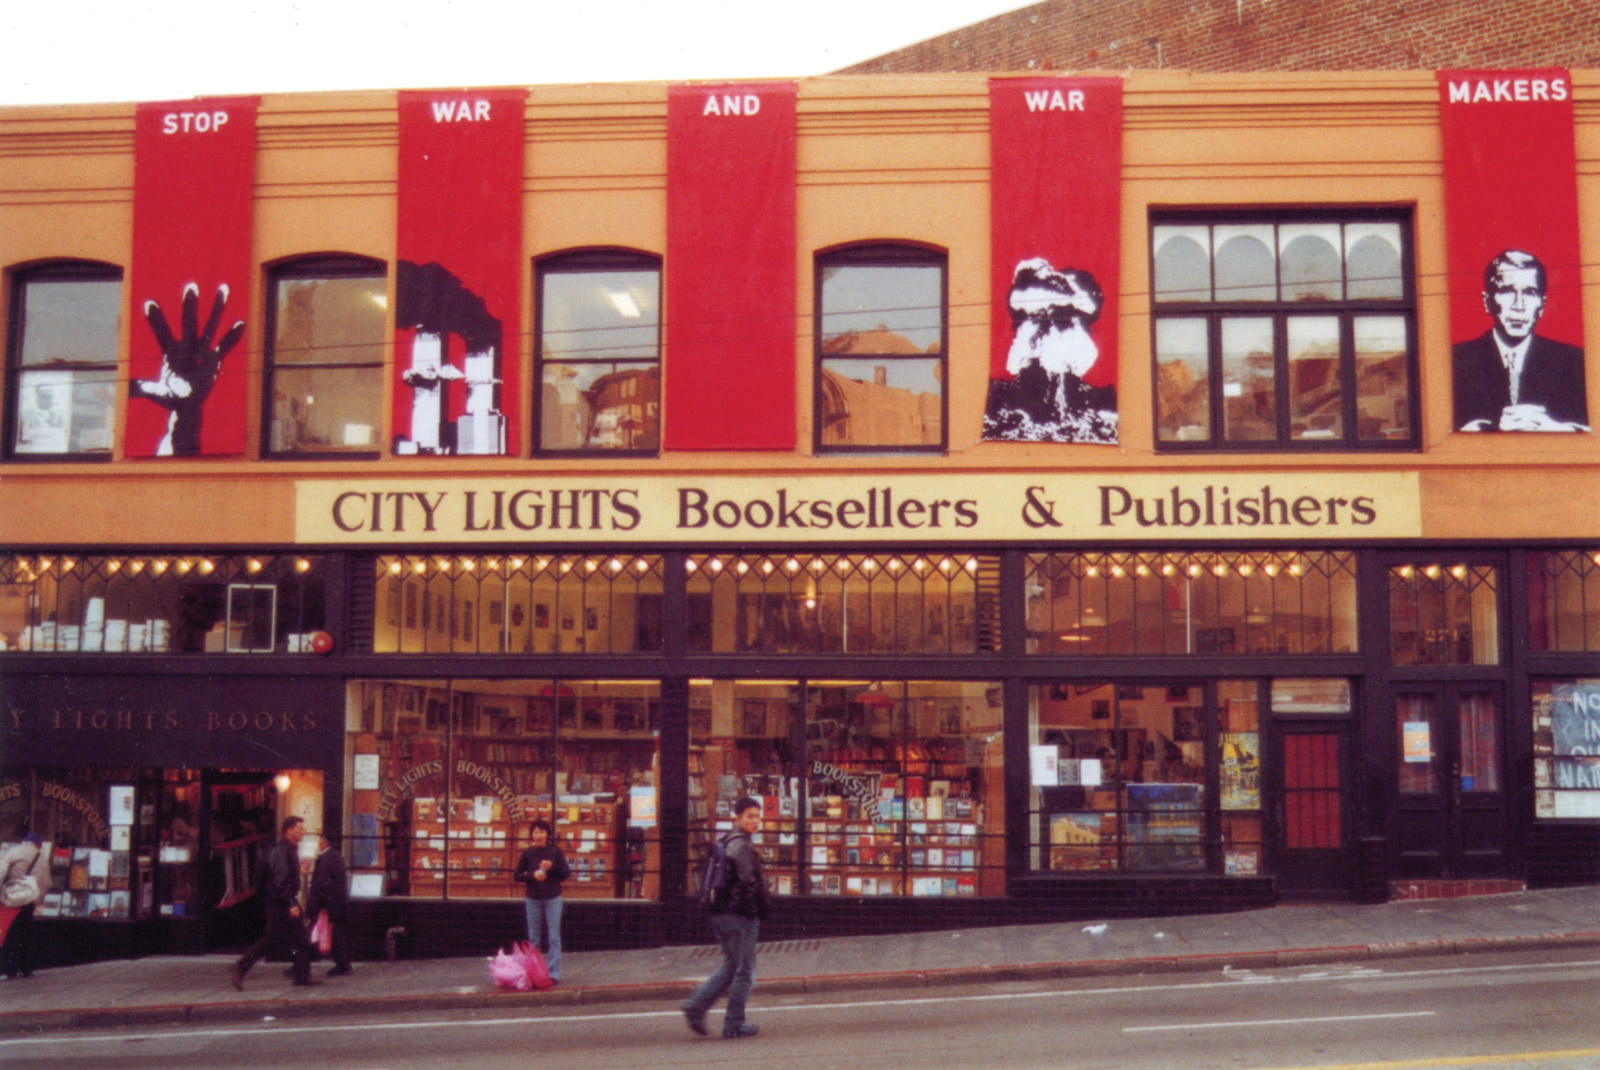 Few people walk by the City Lights storefront that is decorated with large red banners